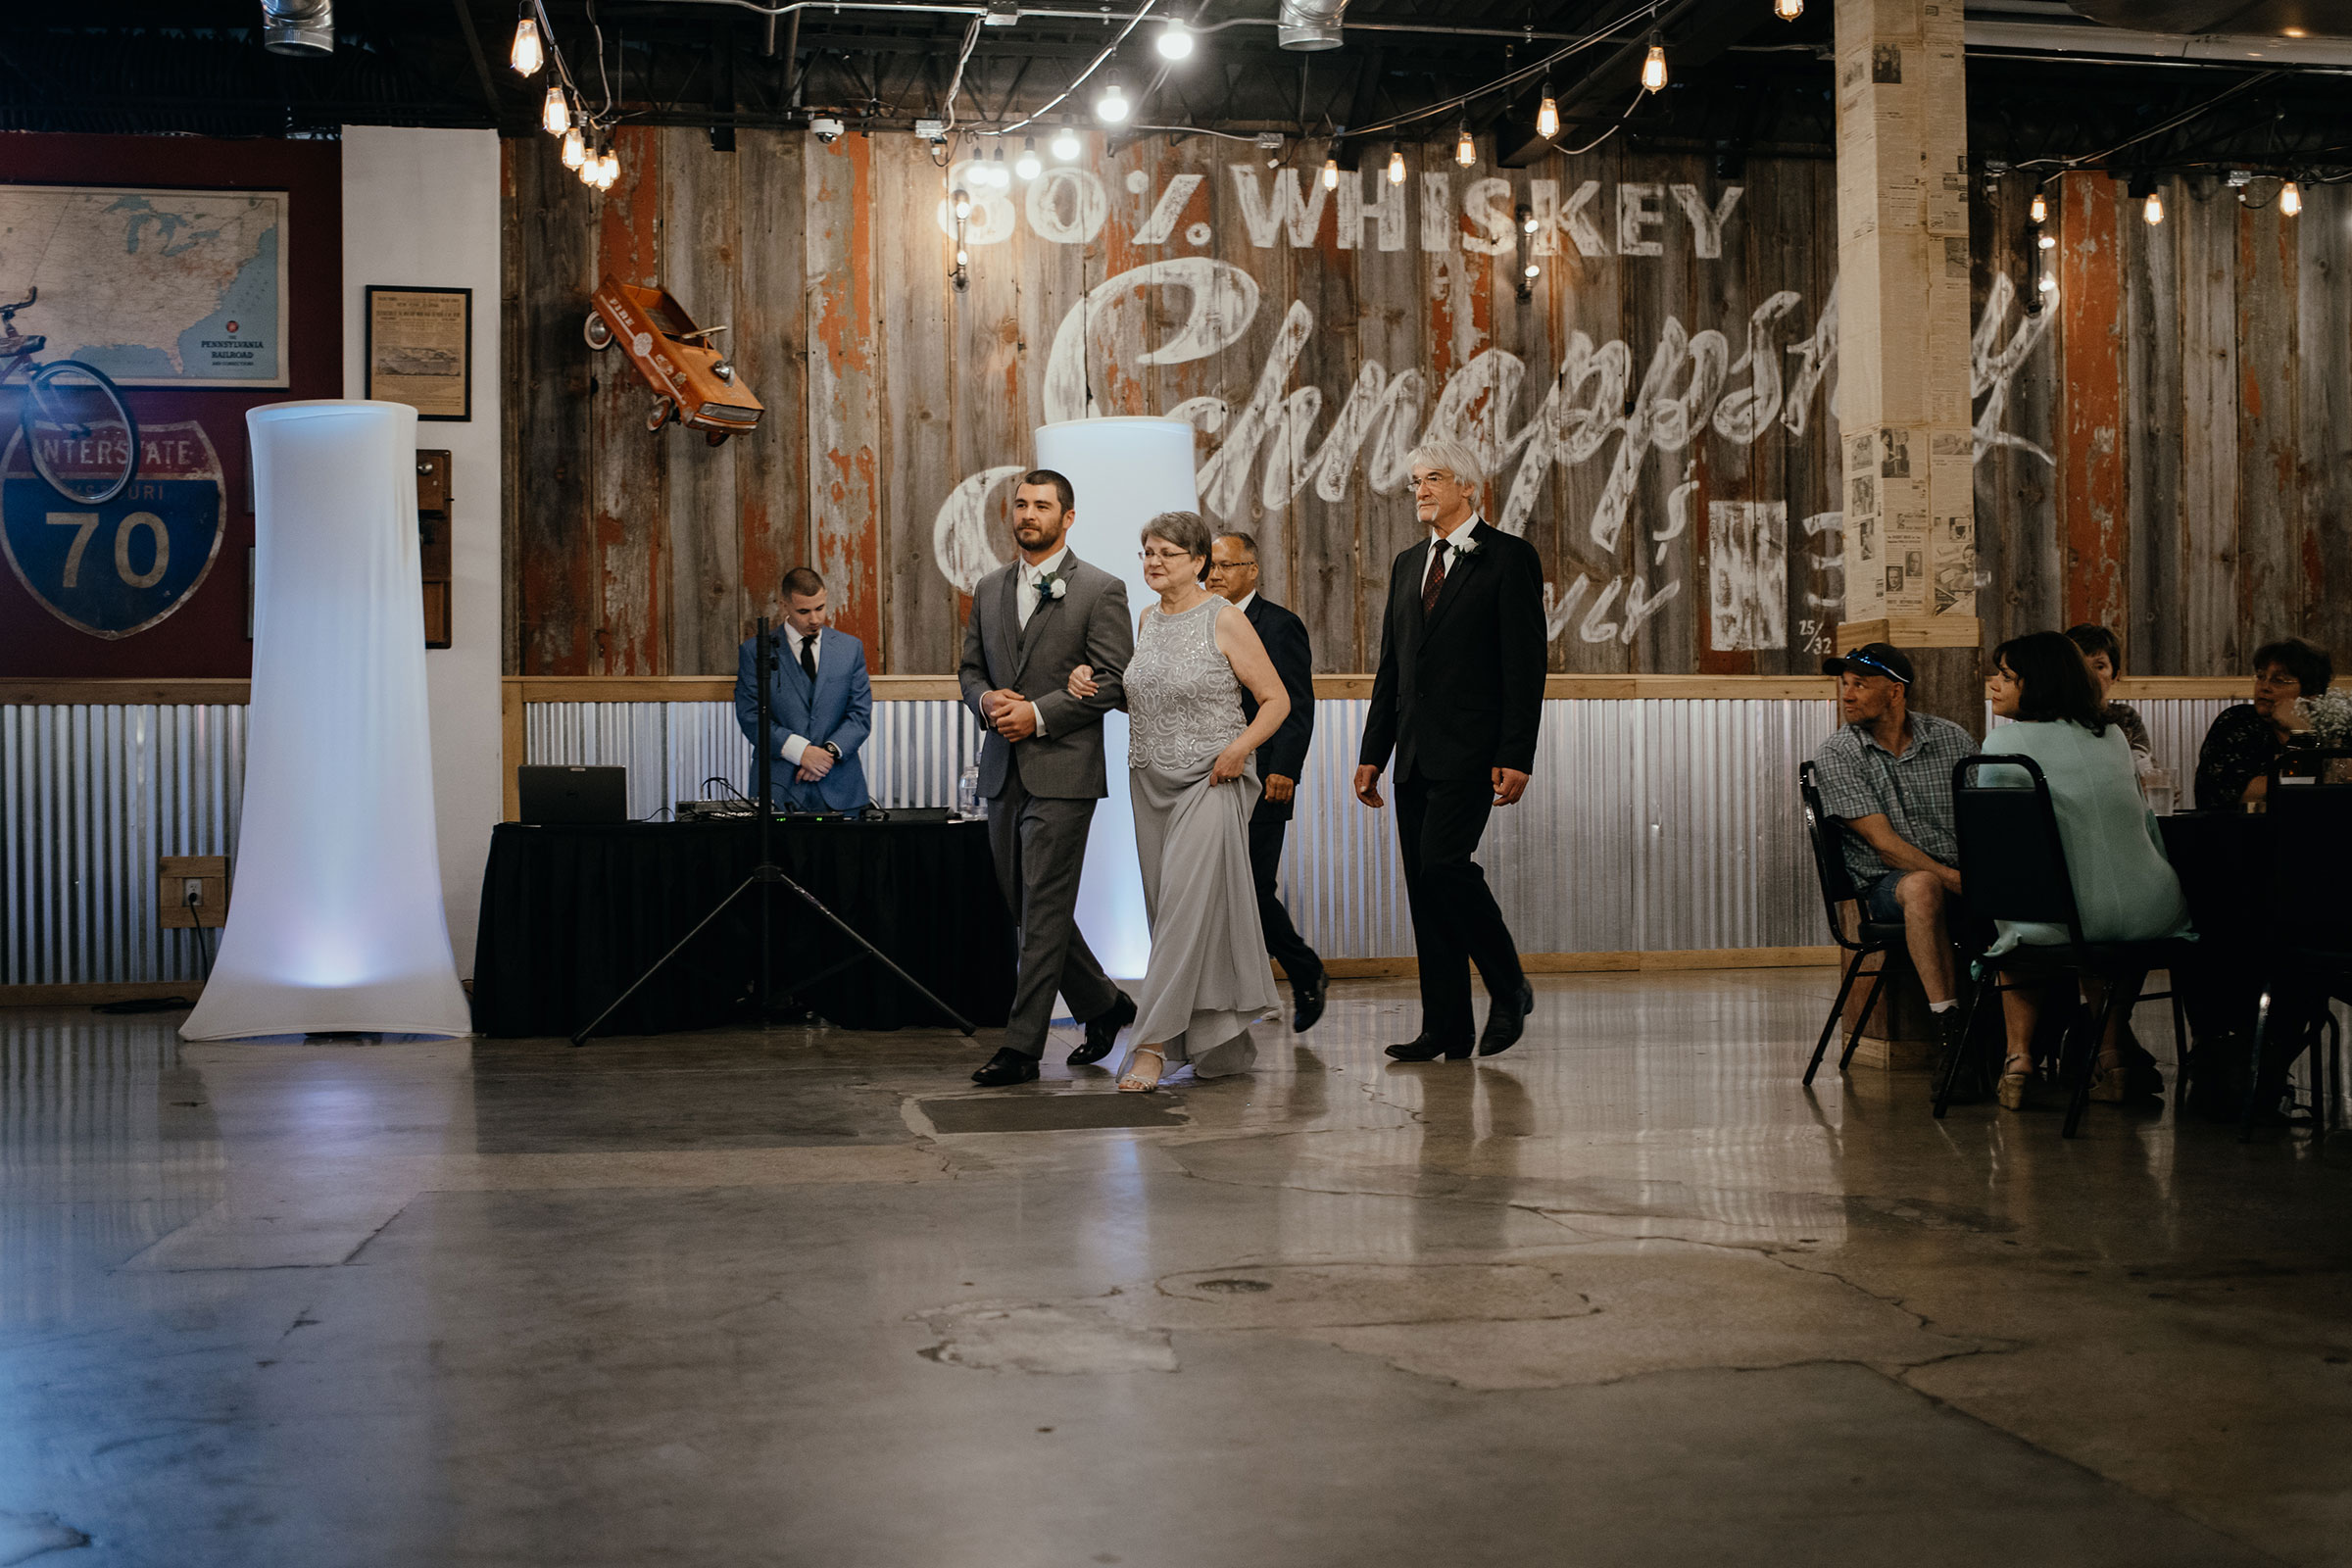 groom-walking-mother-down-aisle-decades-event-center-building-desmoines-iowa-raelyn-ramey-photography..jpg